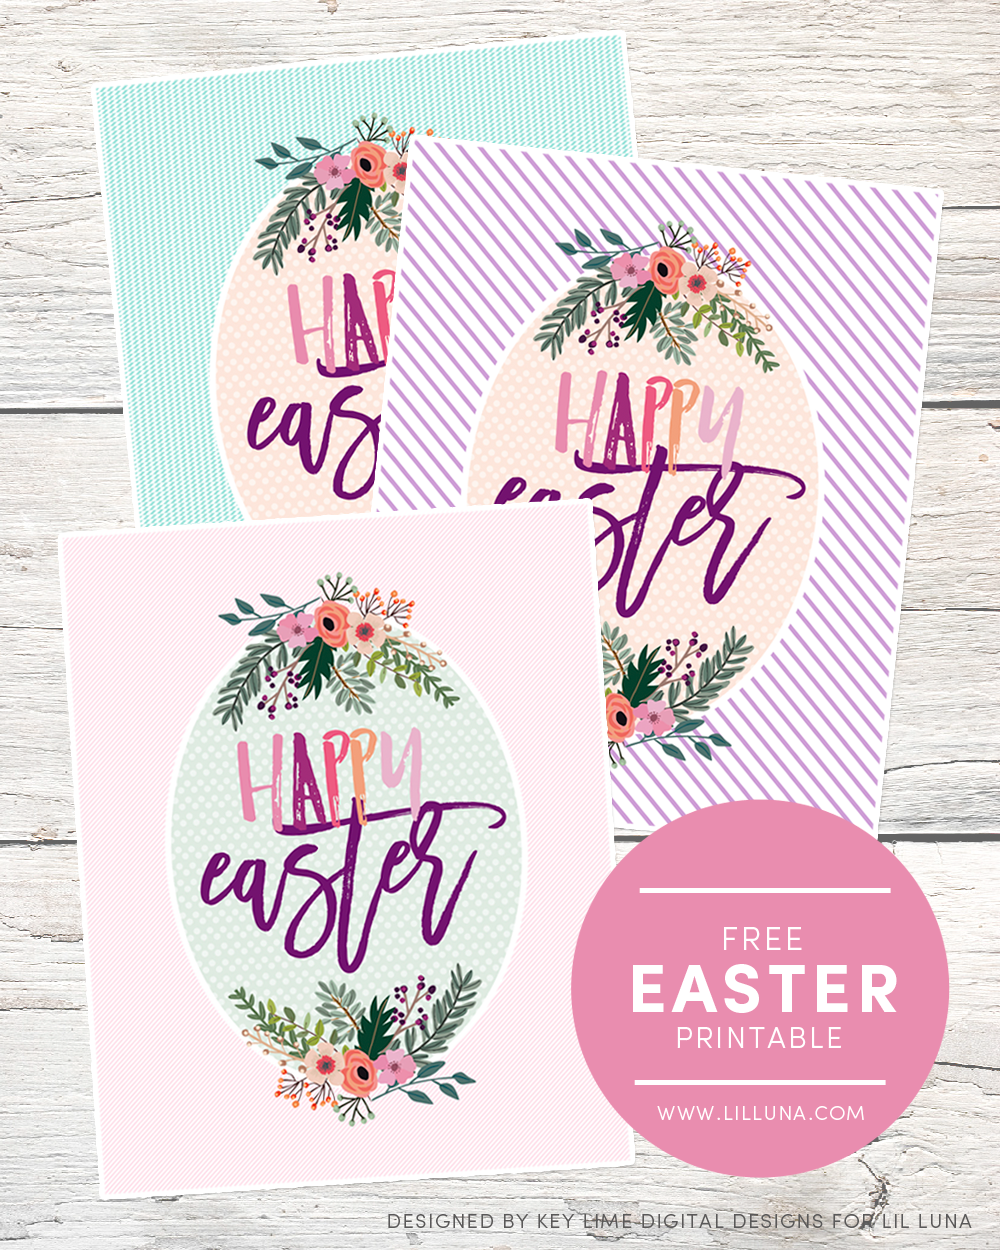 FREE Happy Easter Printables - available to download in 3 colors ...